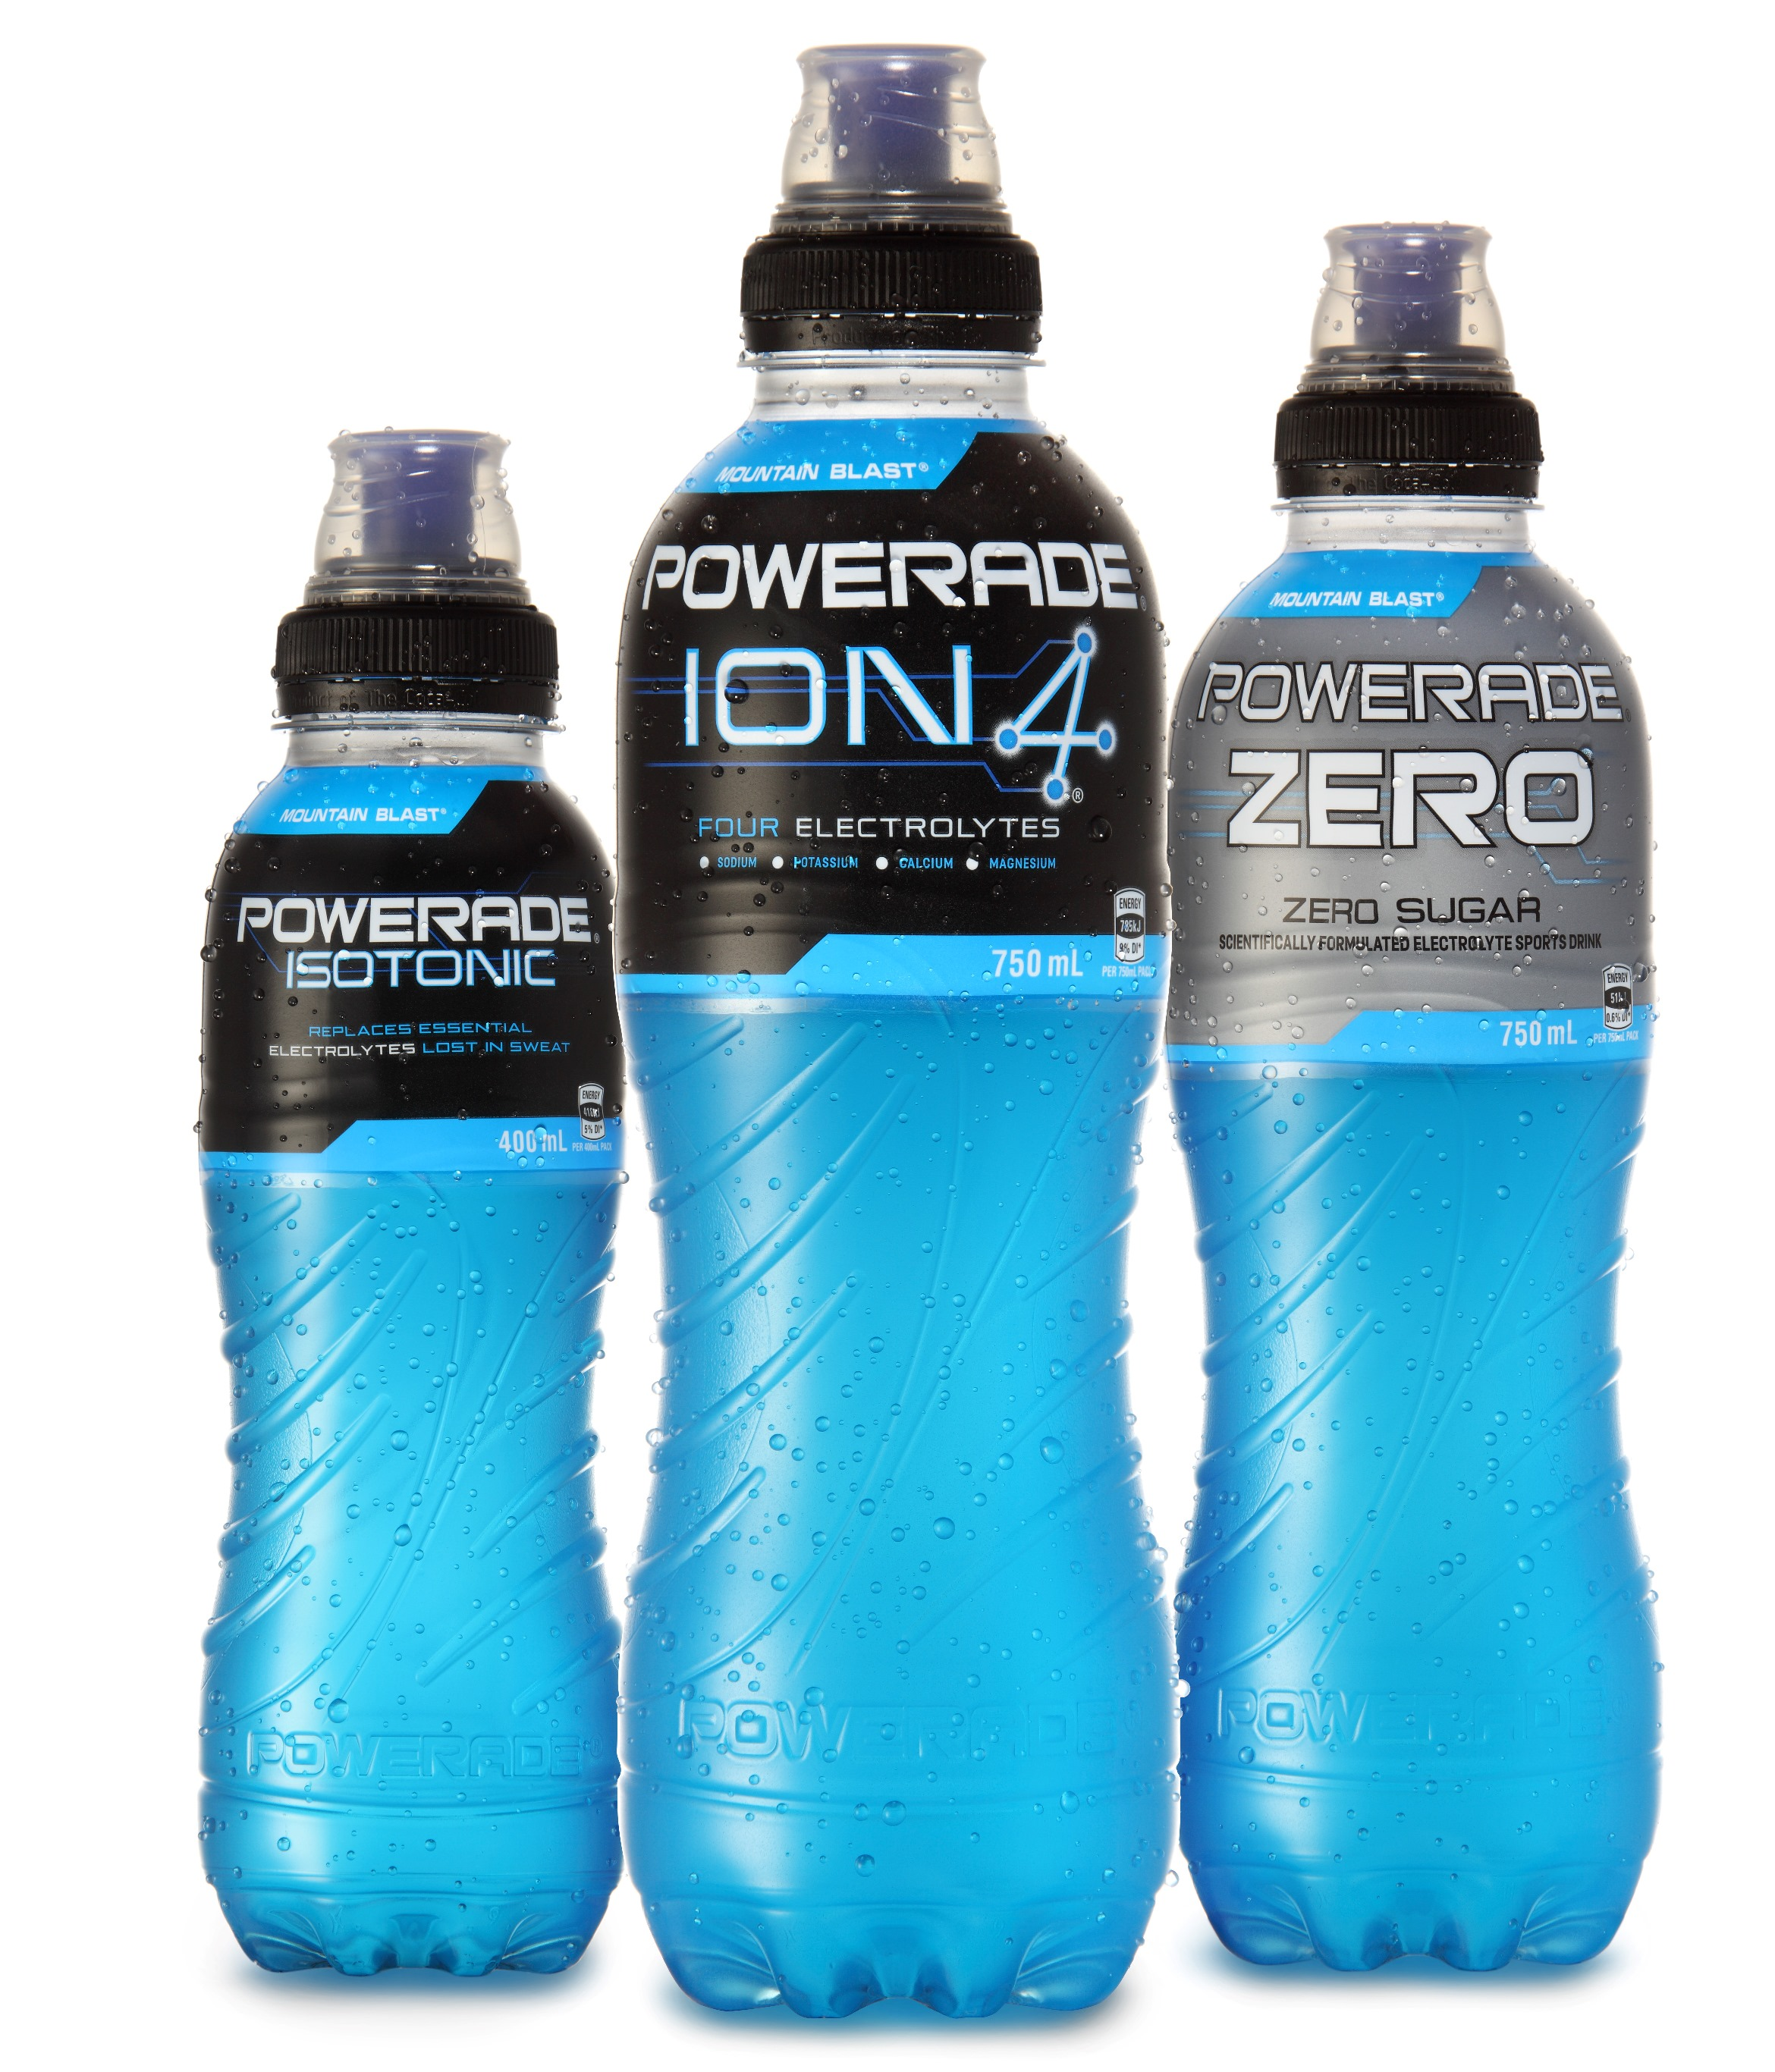 powerade marketing Marketing in 1994, powerade became the official sports drink of the great olympics alongside aquarius powerade's main competition is gatorade marketed by the quaker oats company, a.